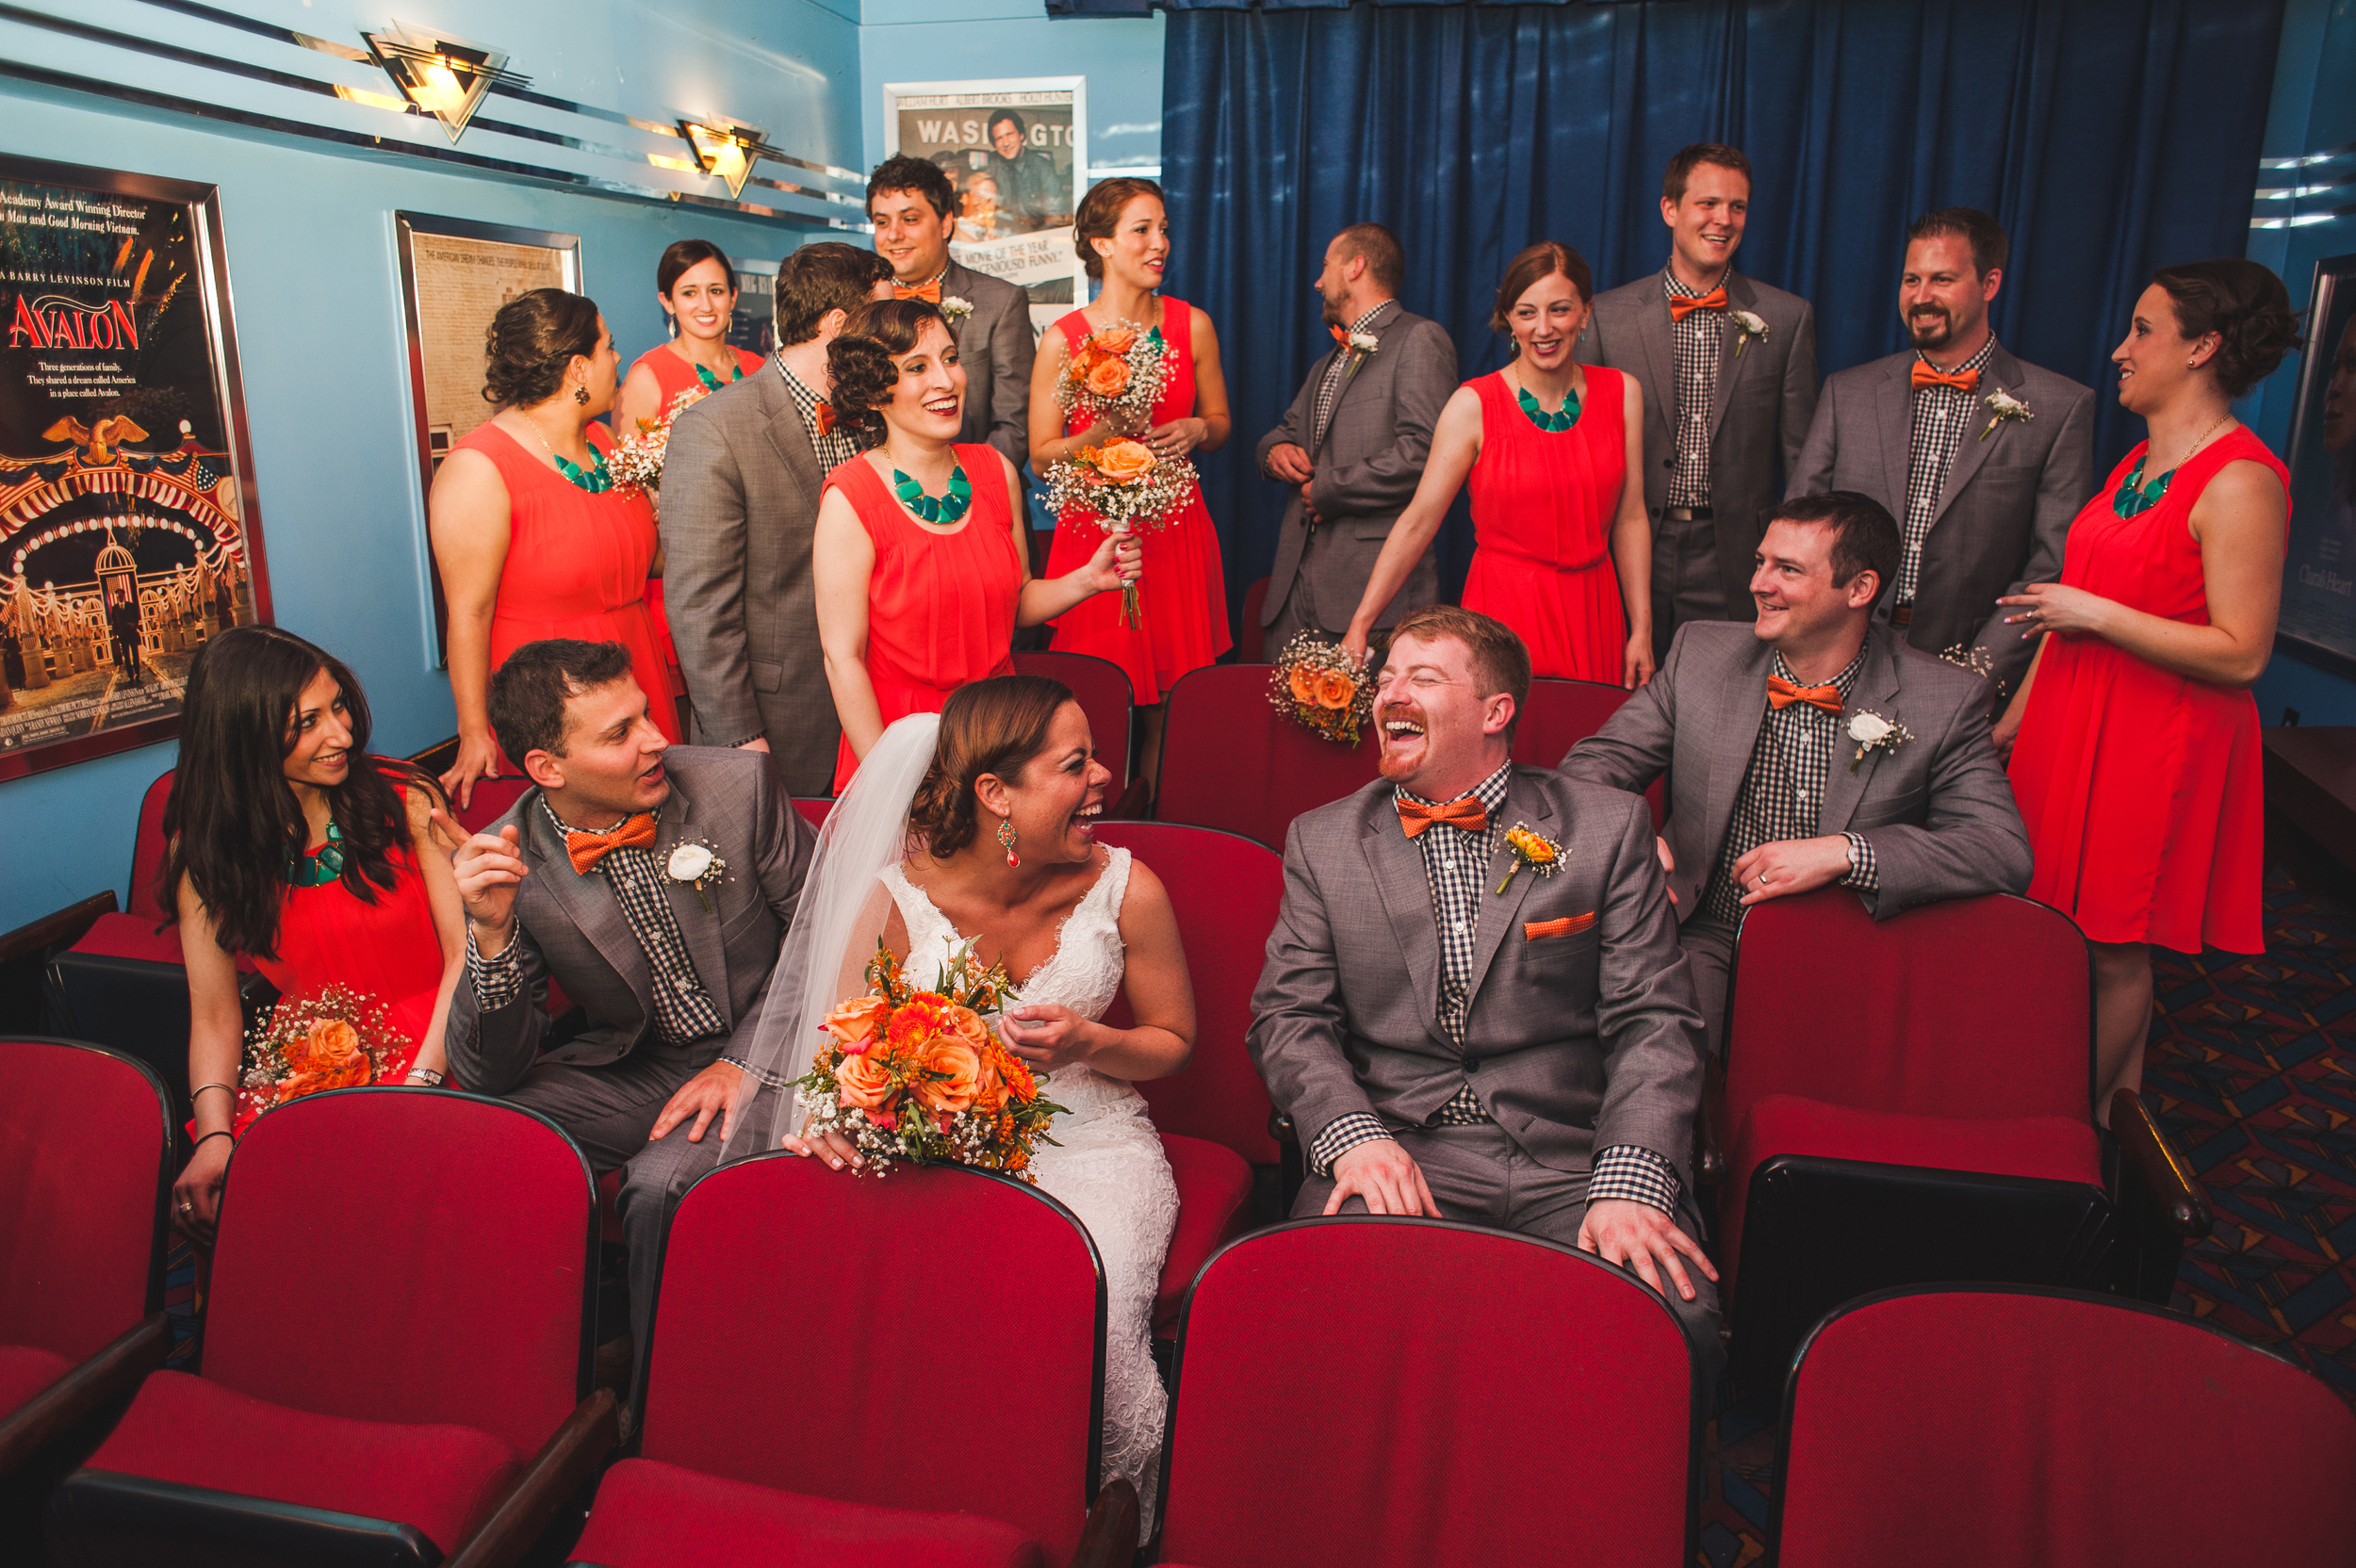 Baltimore Museum of Industry Wedding by Mantas Kubilinskas-17.jpg